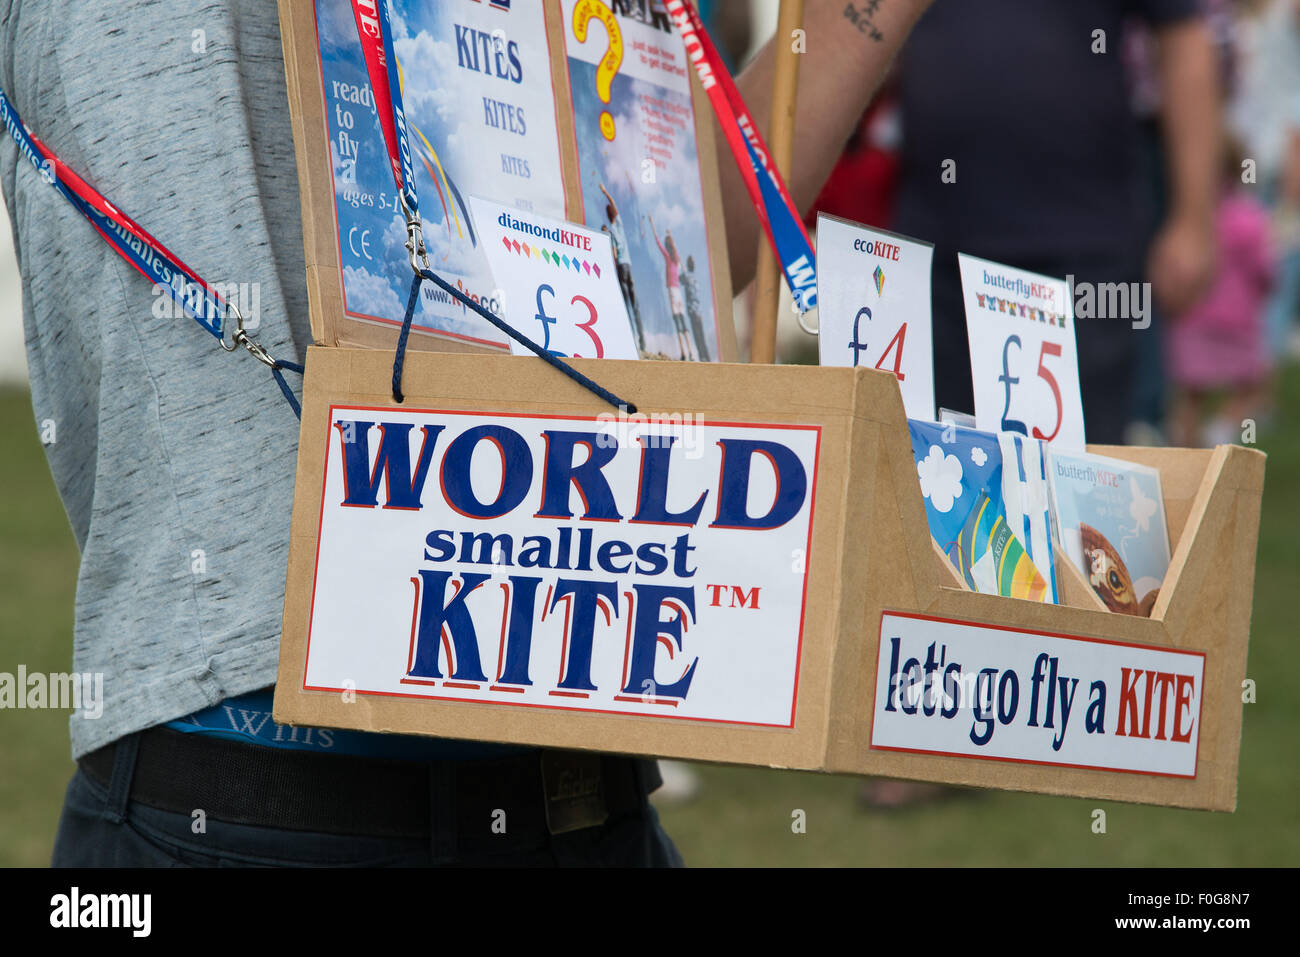 Portsmouth, UK. 15th August 2015. A trader sells the worlds smallest kite at the International Kite Festival. Credit: Stock Photo